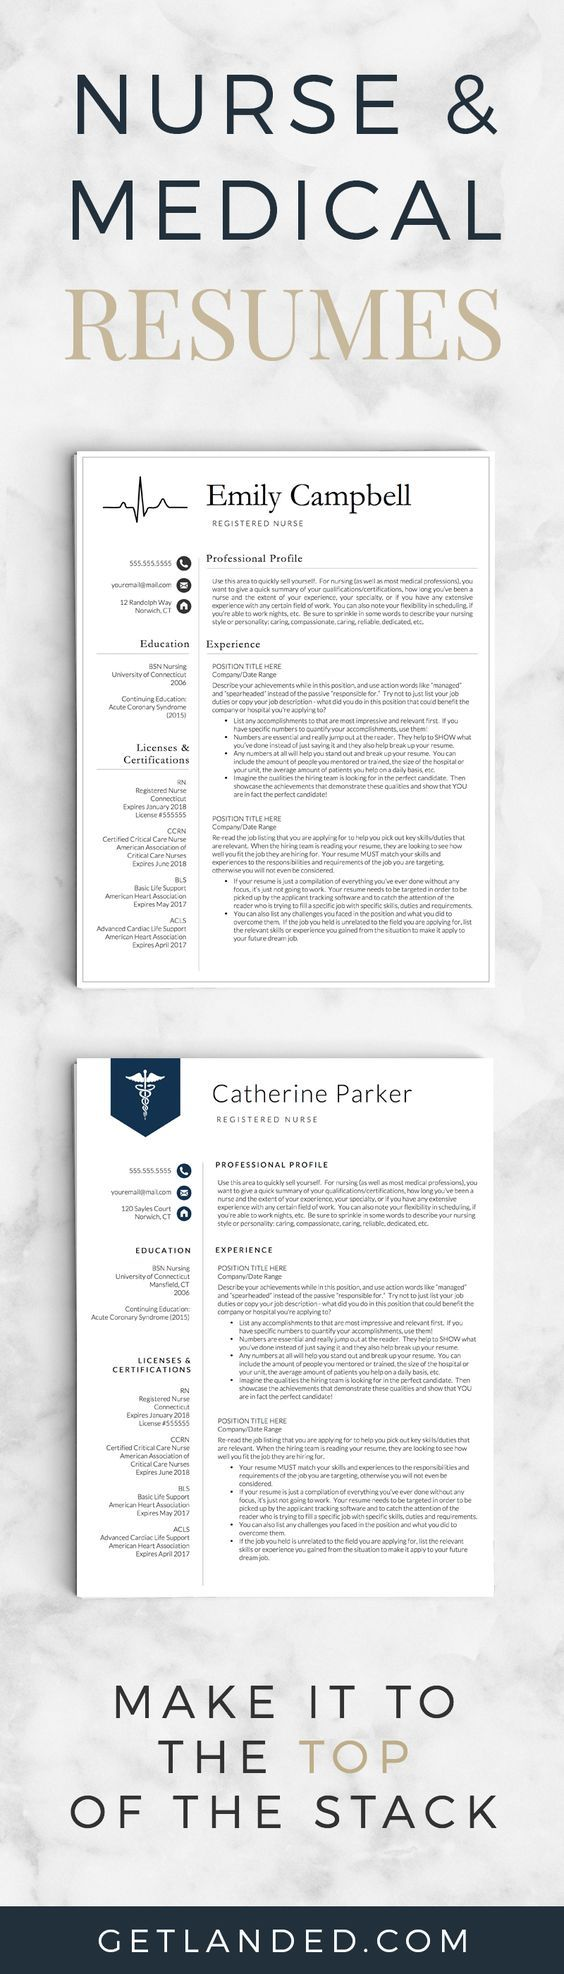 Nurse Resume Templates  Makes Me Want To Hurry Up And Finish